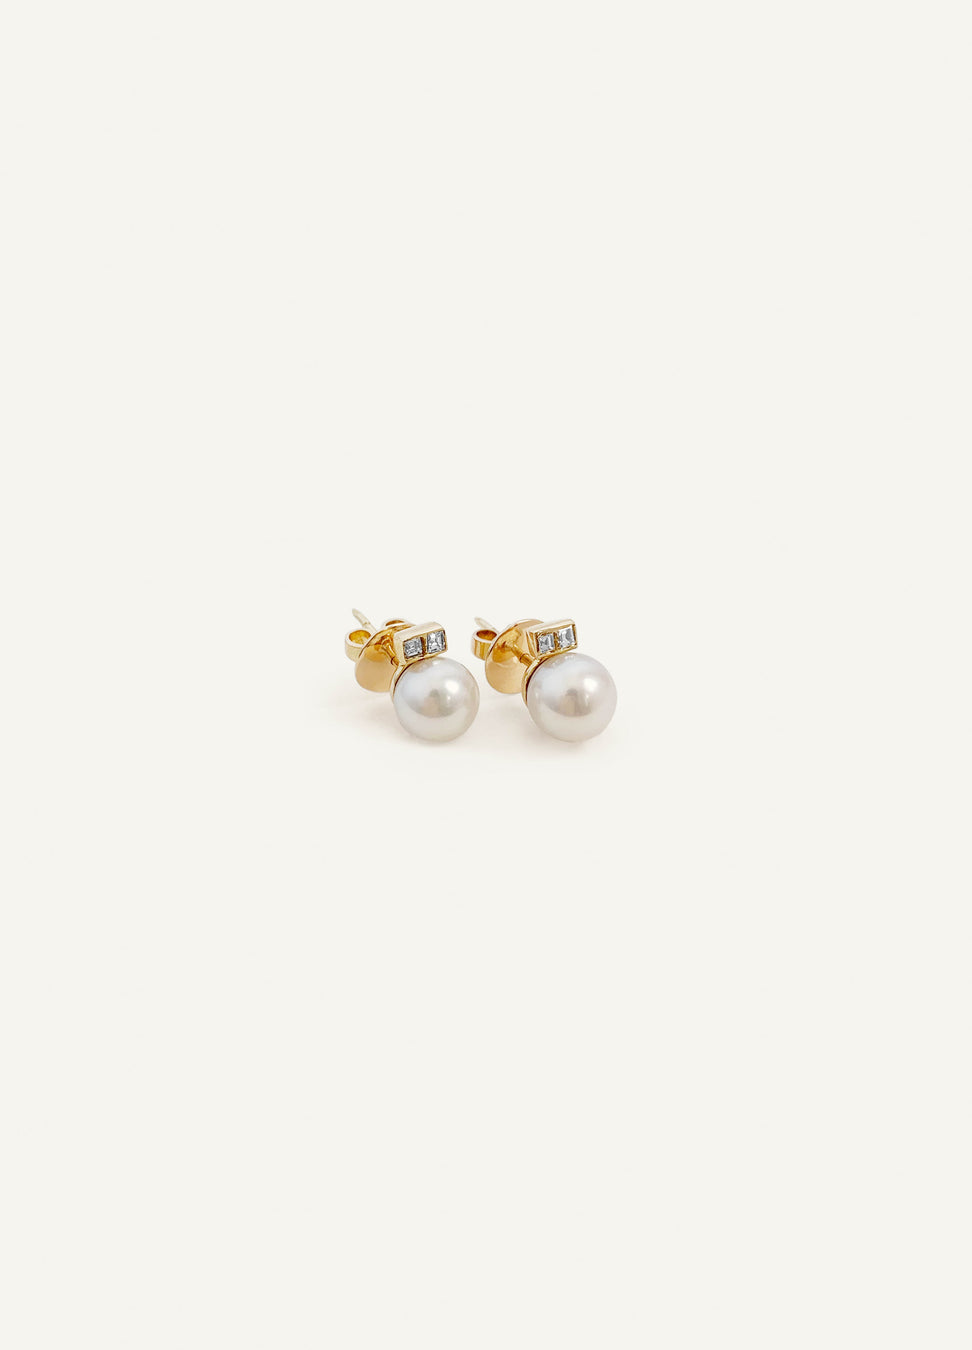 14k Pearl with Diamond Earrings